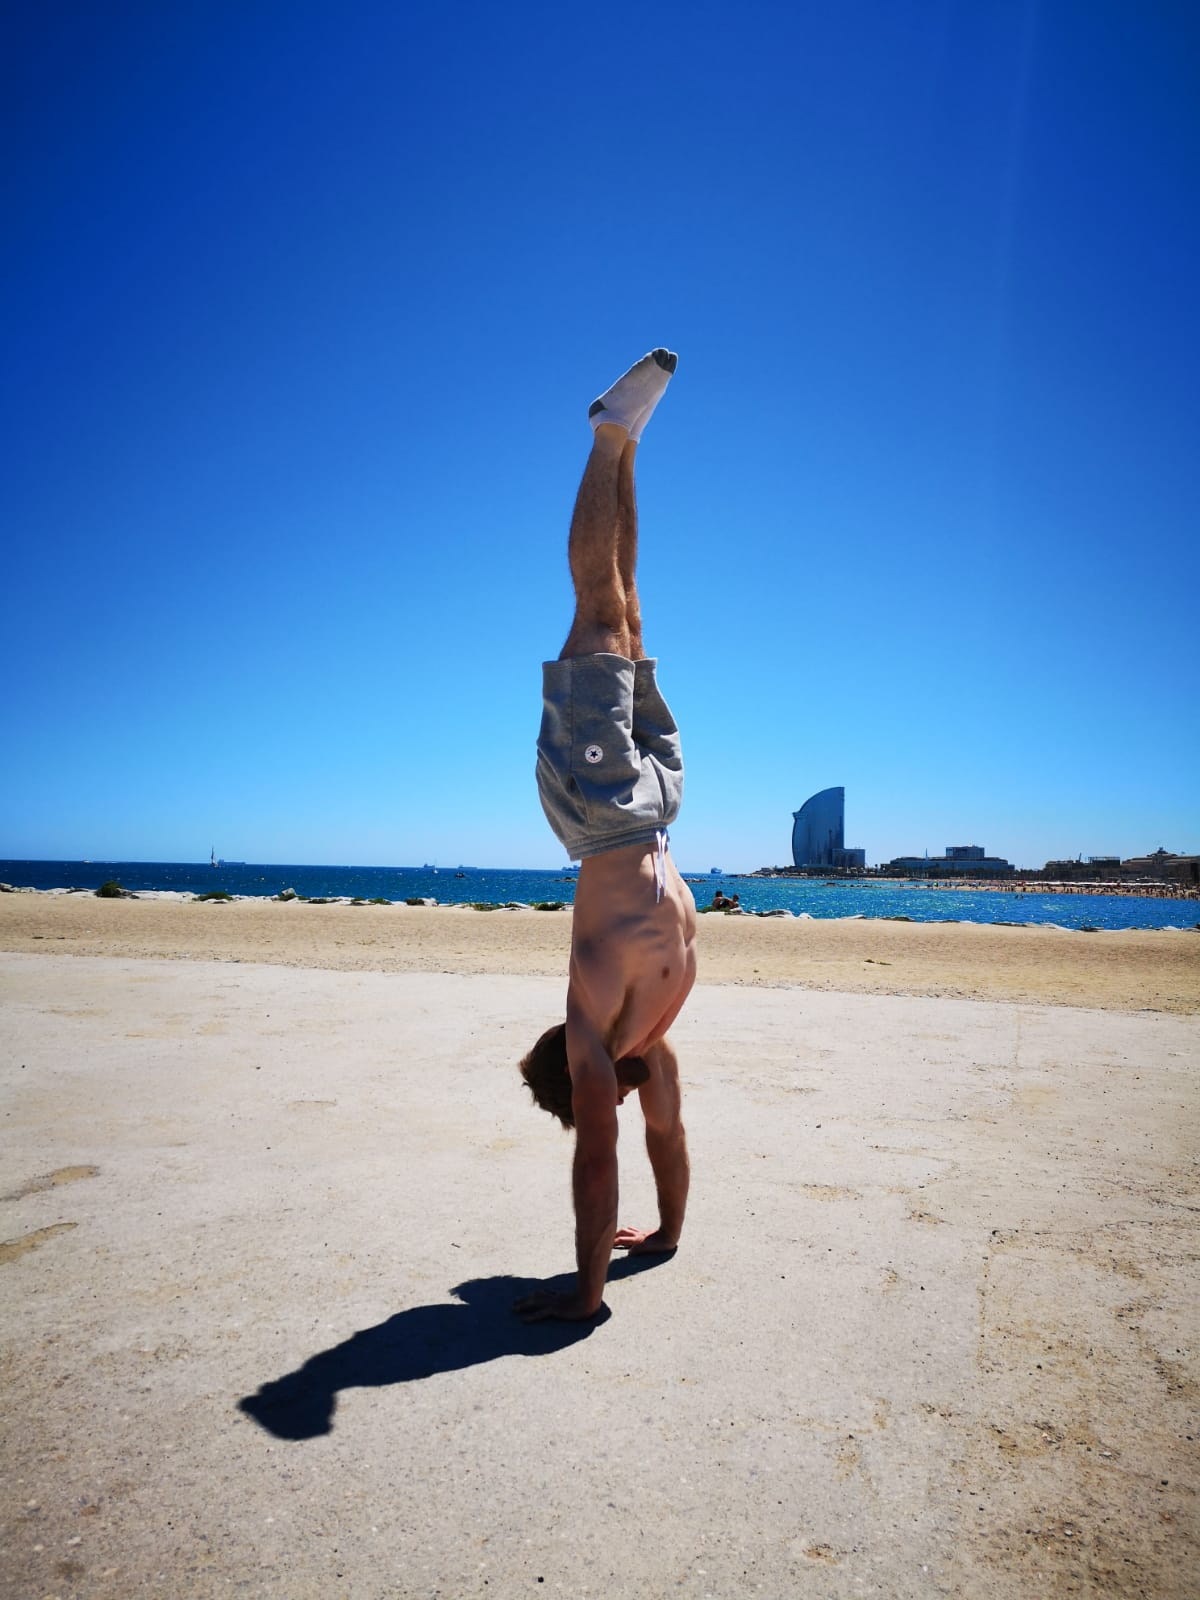 Barcelona JUN 2019 Handstand backdrop